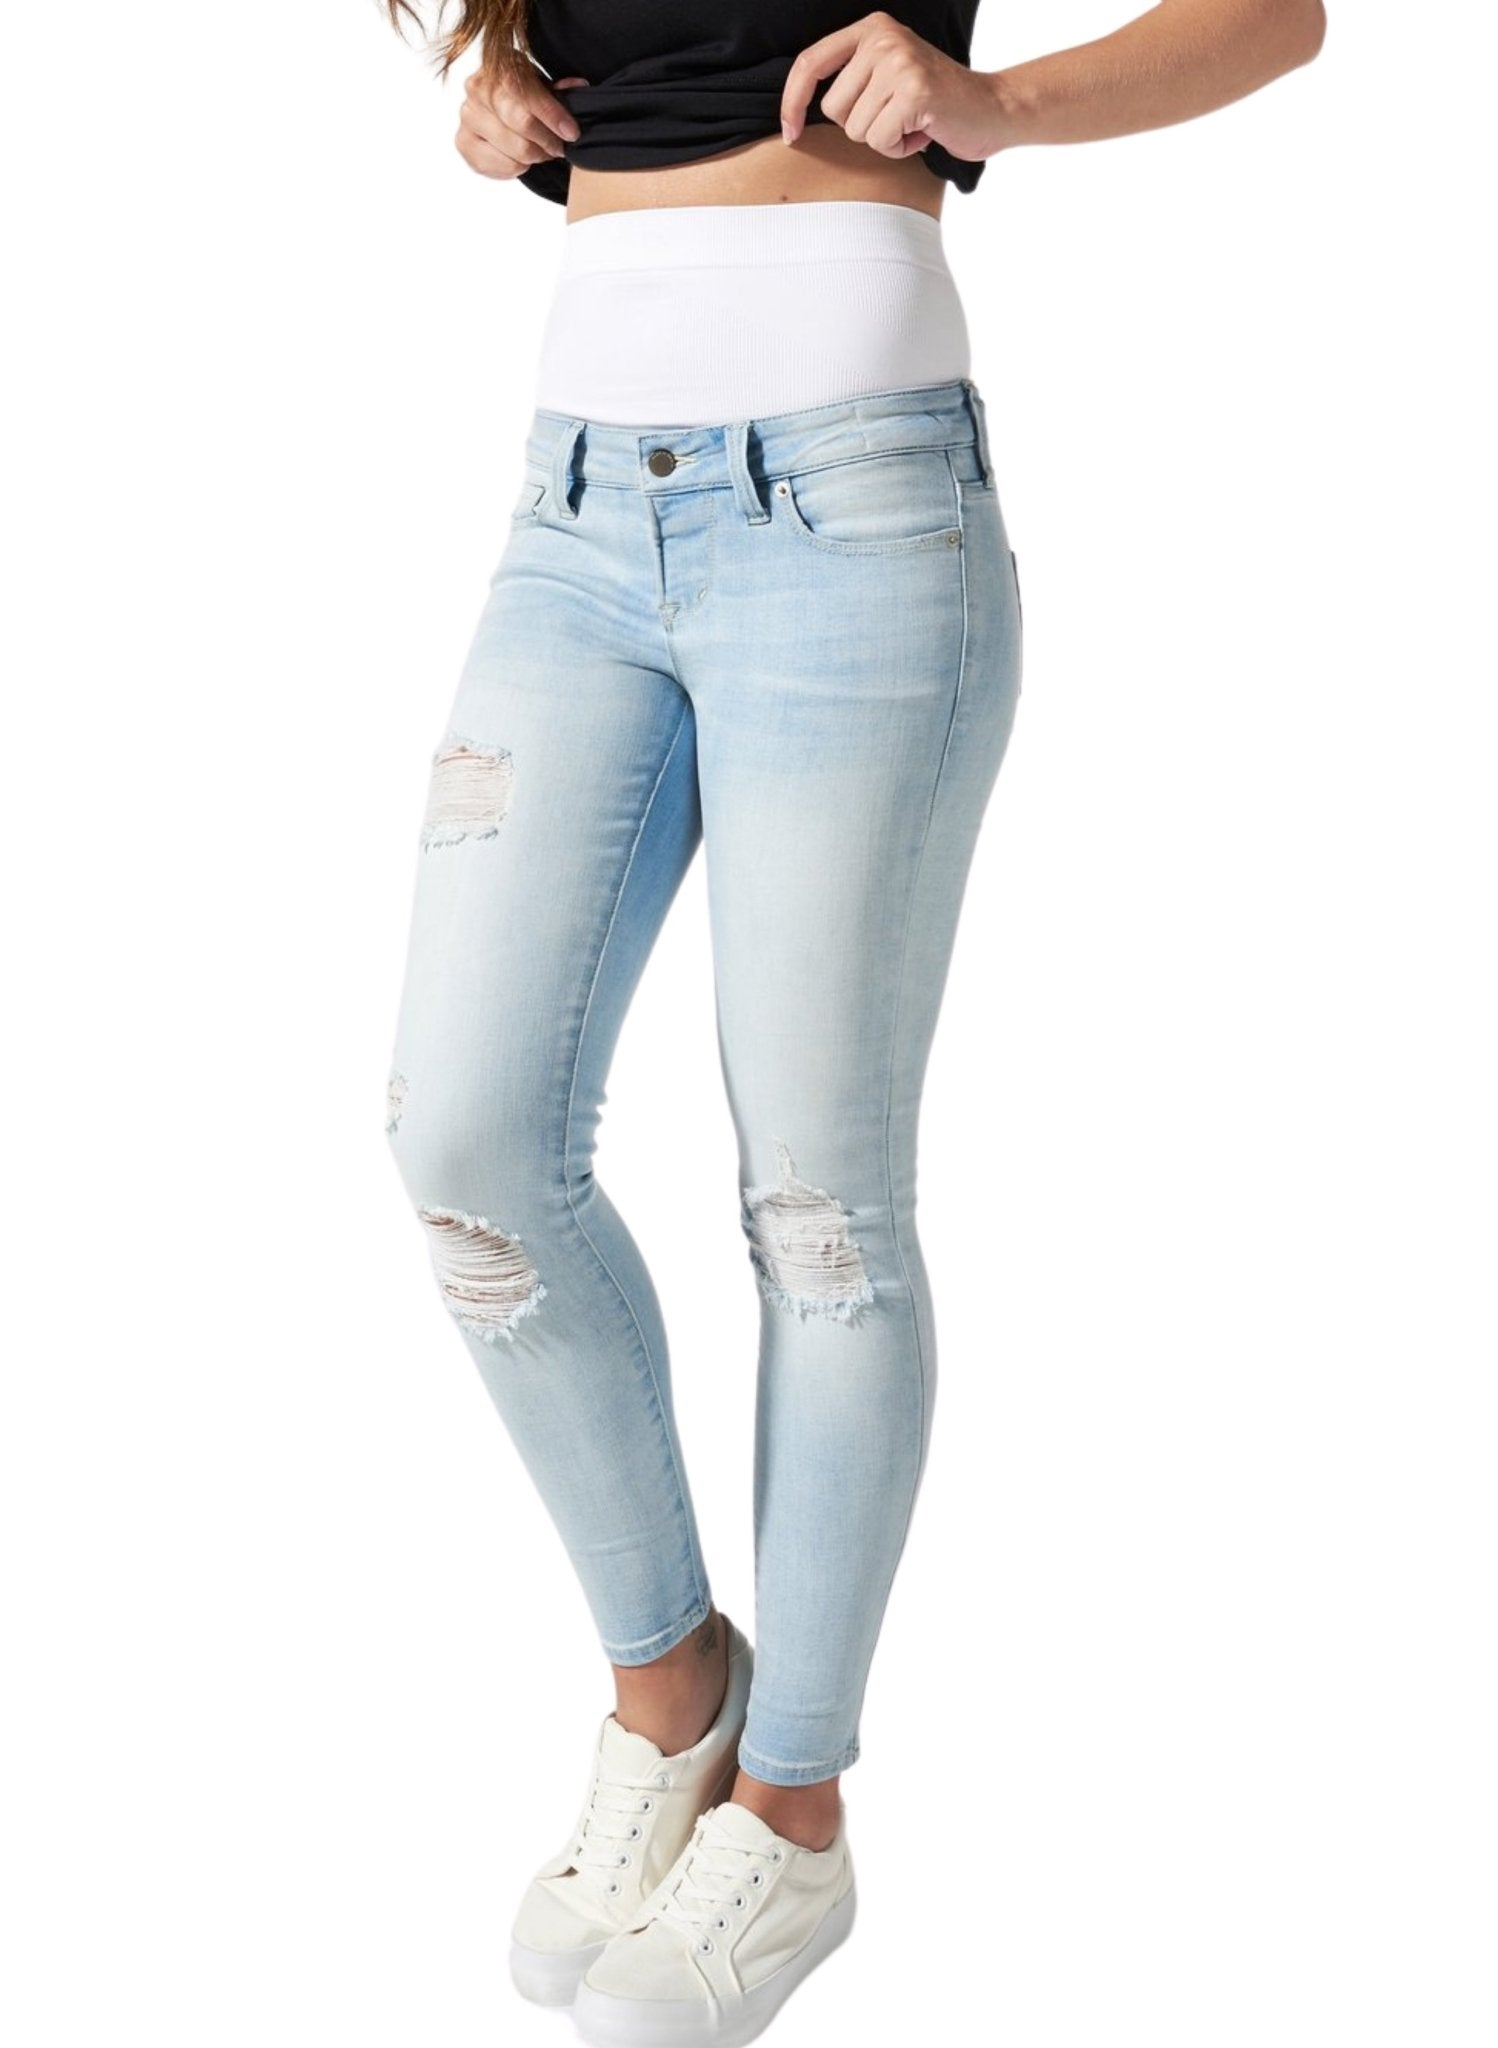 BLANQI Postpartum Support Skinny Jeans - Light Wash - Mums and Bumps